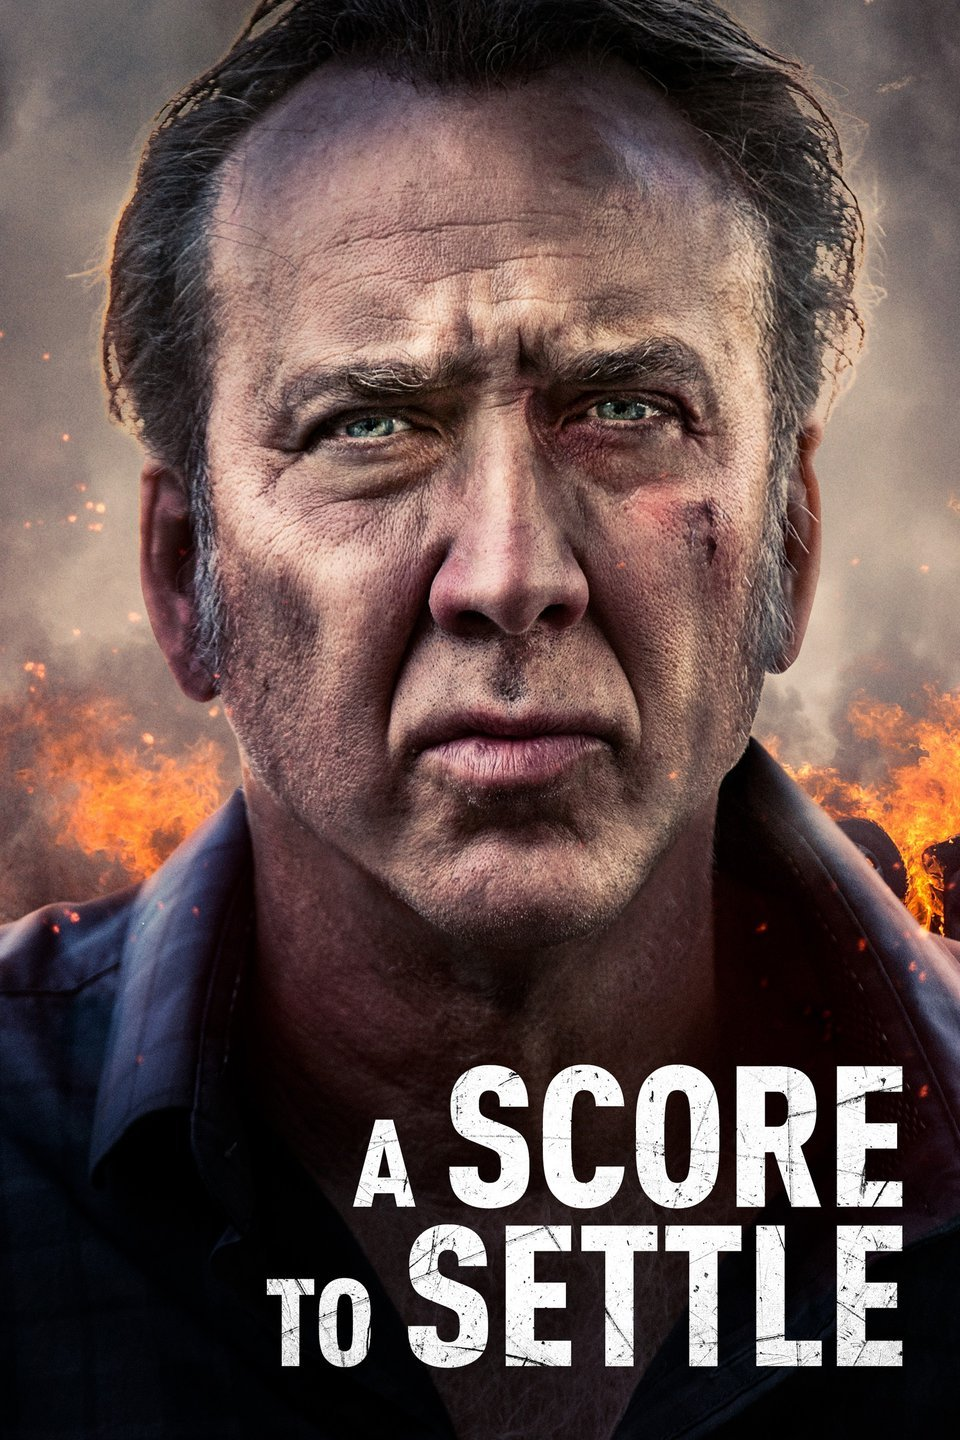 A Score to Settle (2019) - Directed by: Shawn KuStarring: Nicolas Cage, Benjamin Bratt, Noah Le GrosRated: R for Violence and LanguageRunning Time: 1h 43mTMM Score: 2 StarsSTRENGTHS: Nic CageWEAKNESSES: Amateur Filmmaking